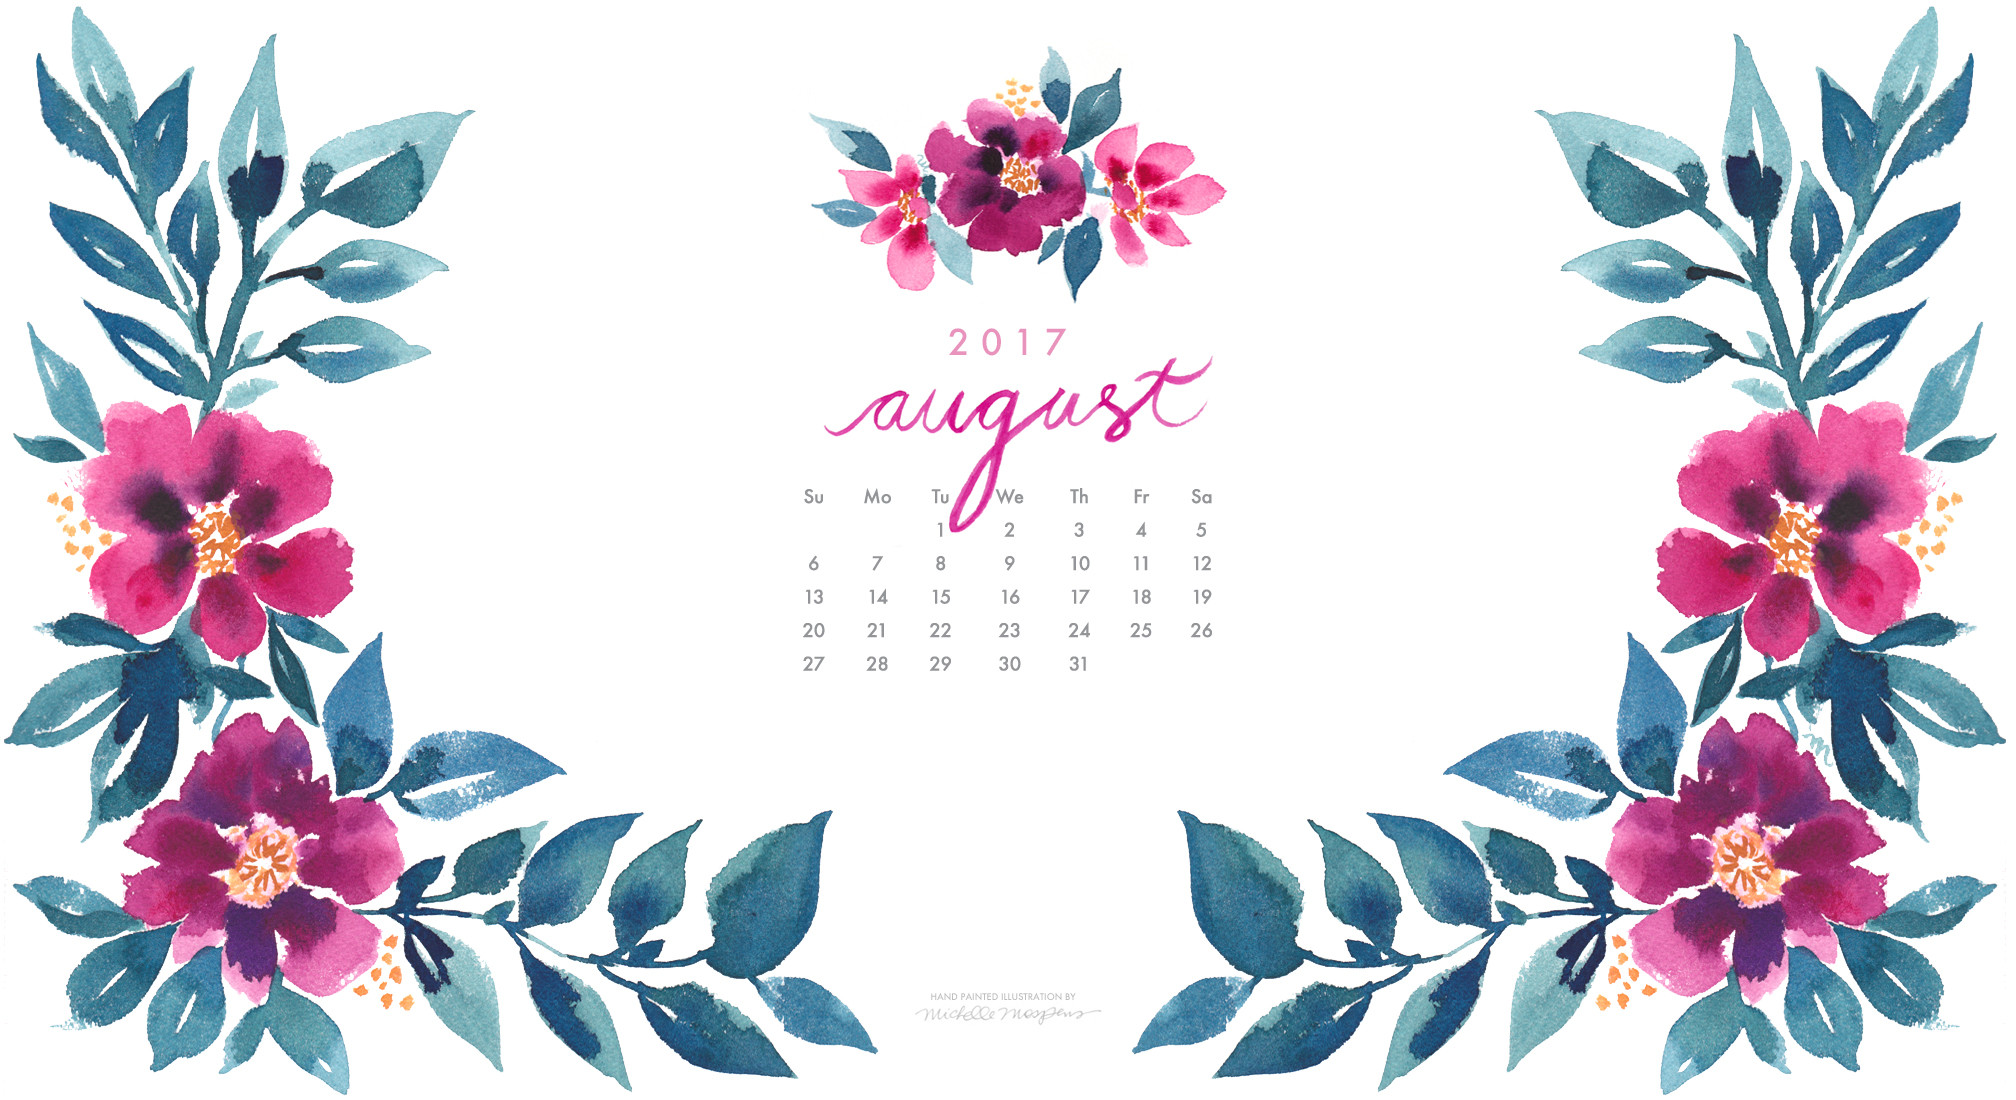 2016x1100 Pretty posy watercolor August 2017 calendar wallpaper for your computer.  100% original art by